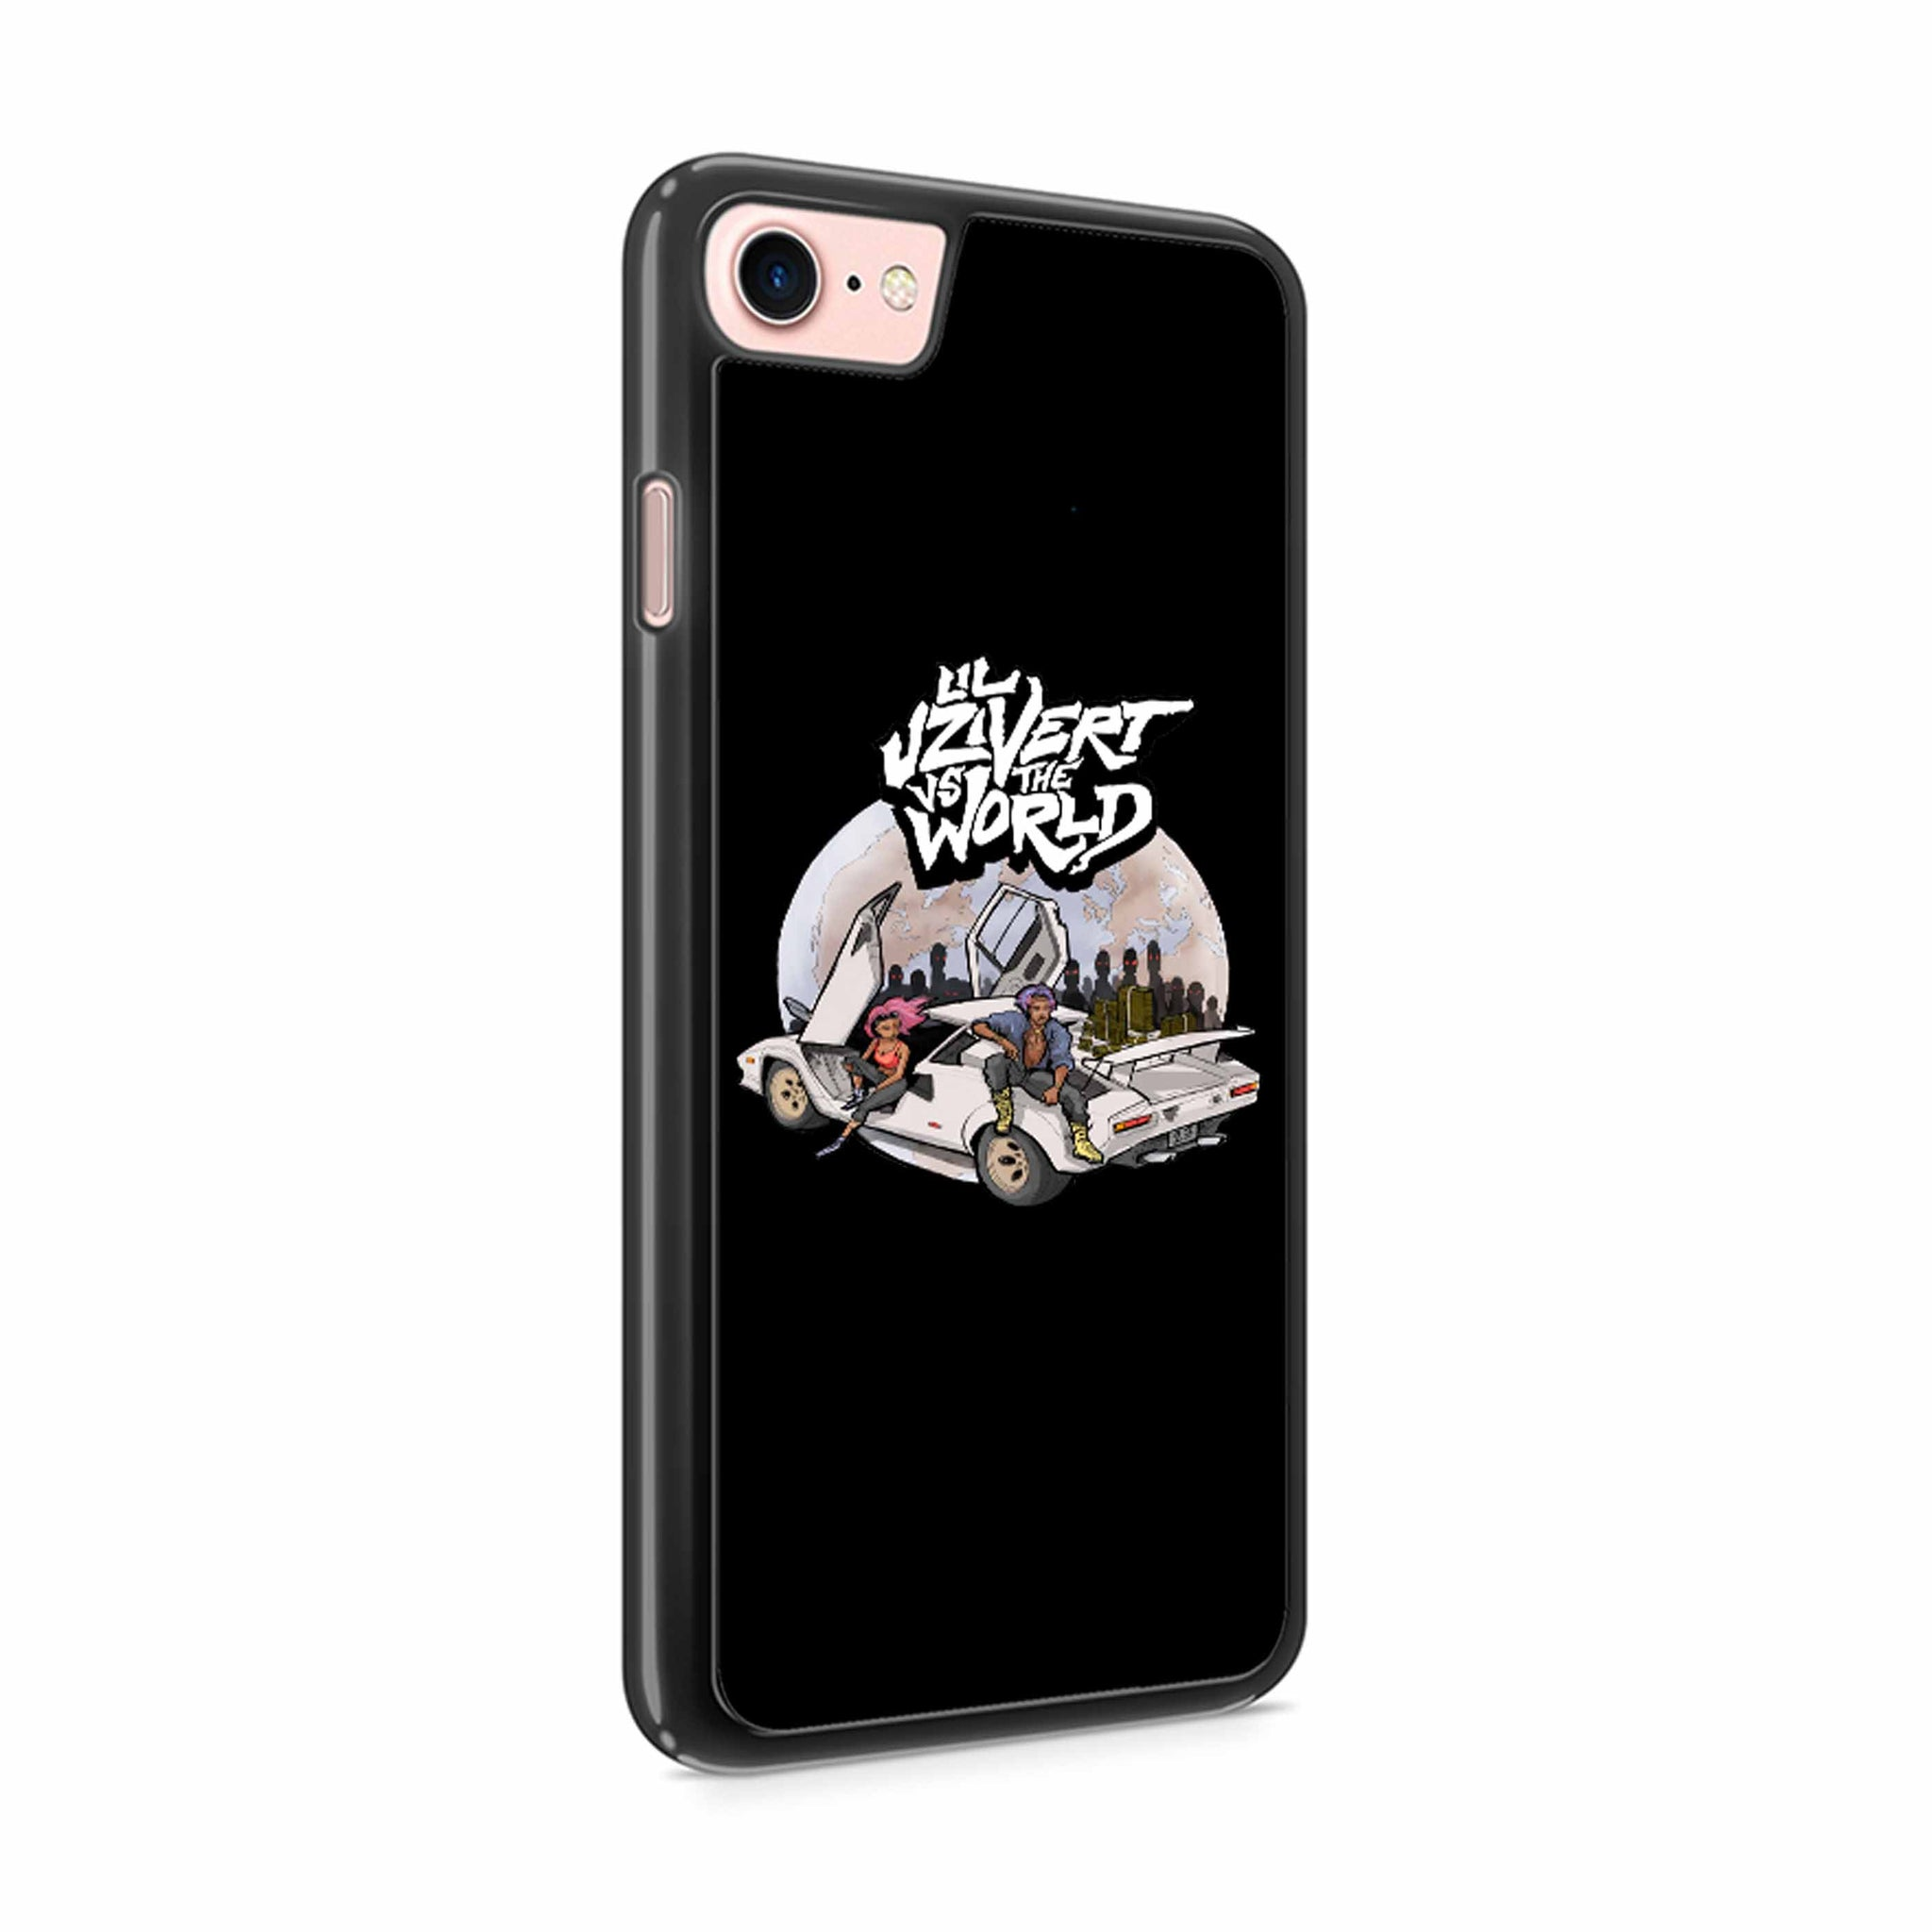 Lil Uzi Vert Vs The World 2 Iphone 7 / 7 Plus / 6 / 6s / 6 Plus / 6S Plus / 5 / 5S / 5C Case